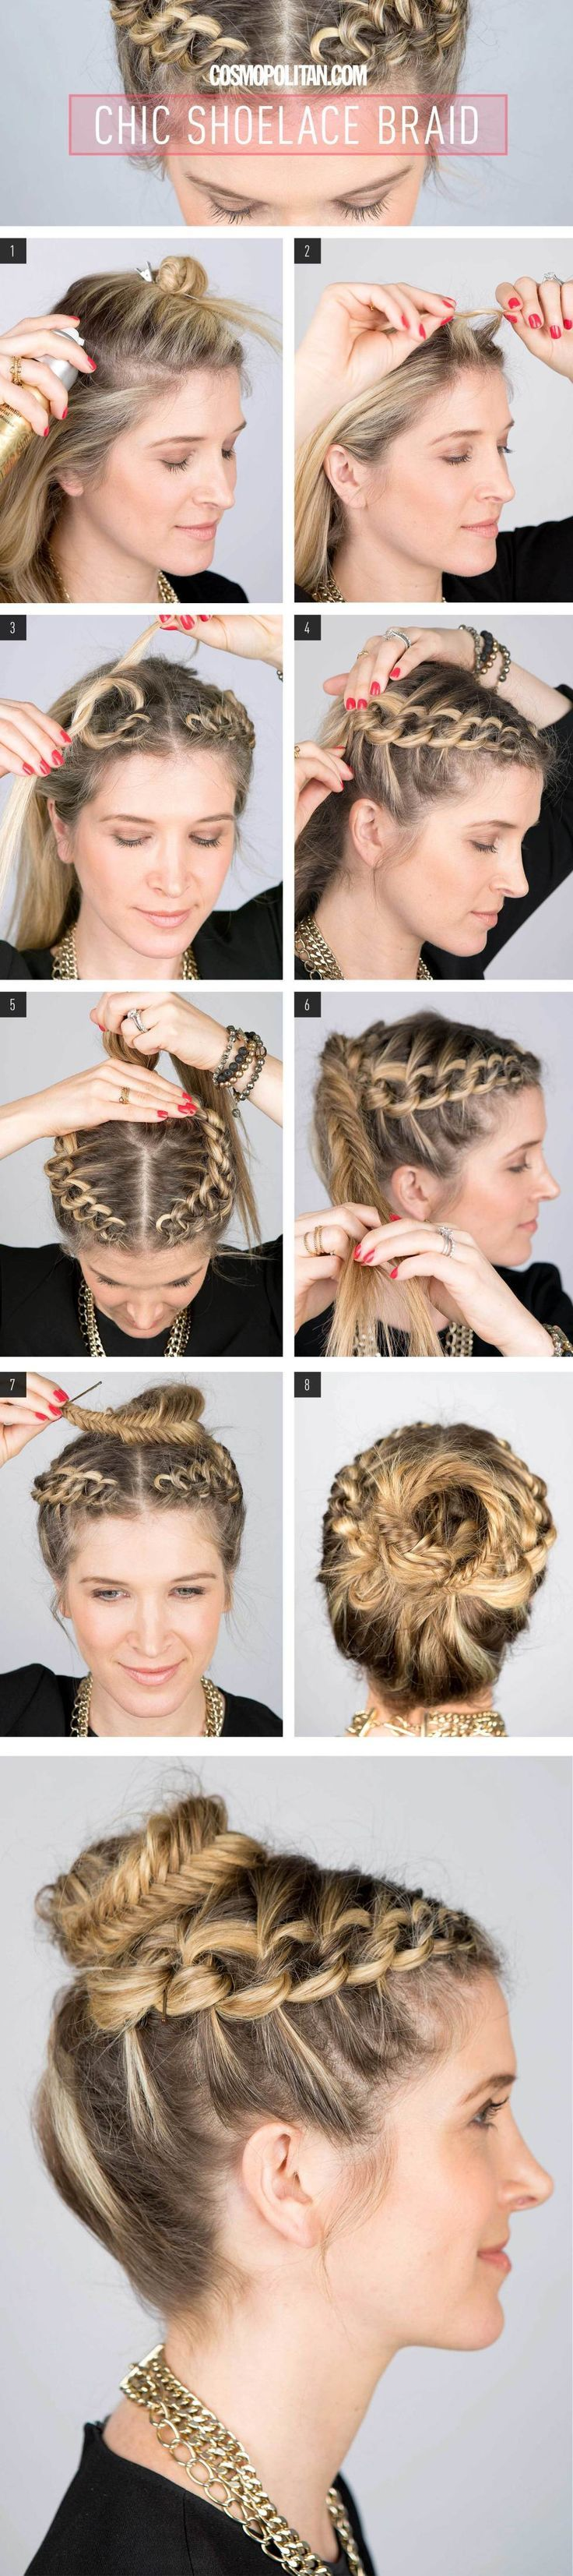 How To Create A Shoelace Braid Updo... maybe just do it on one side and not part in the middle?: